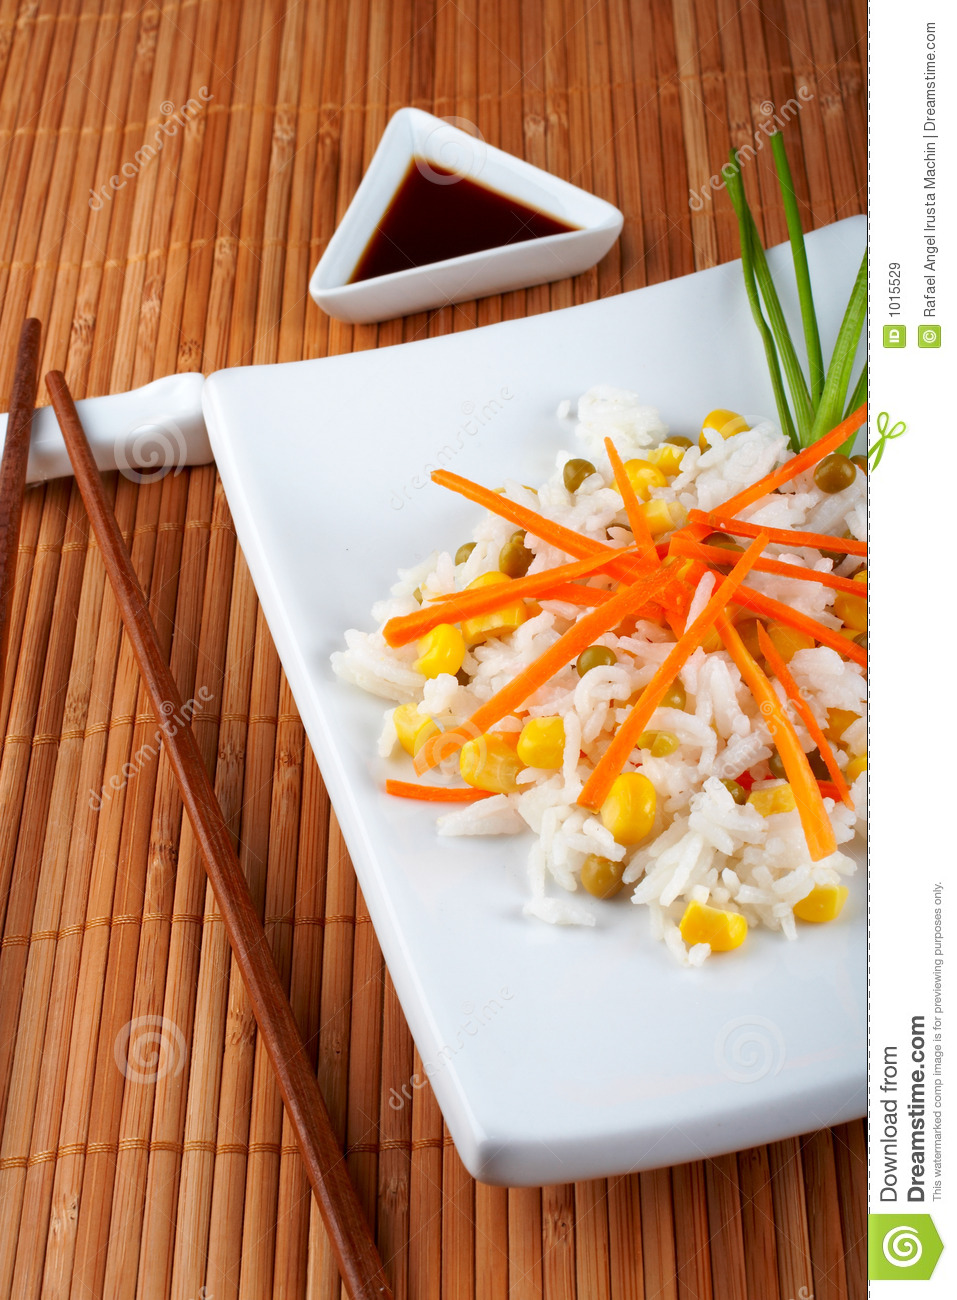 Salad of rice